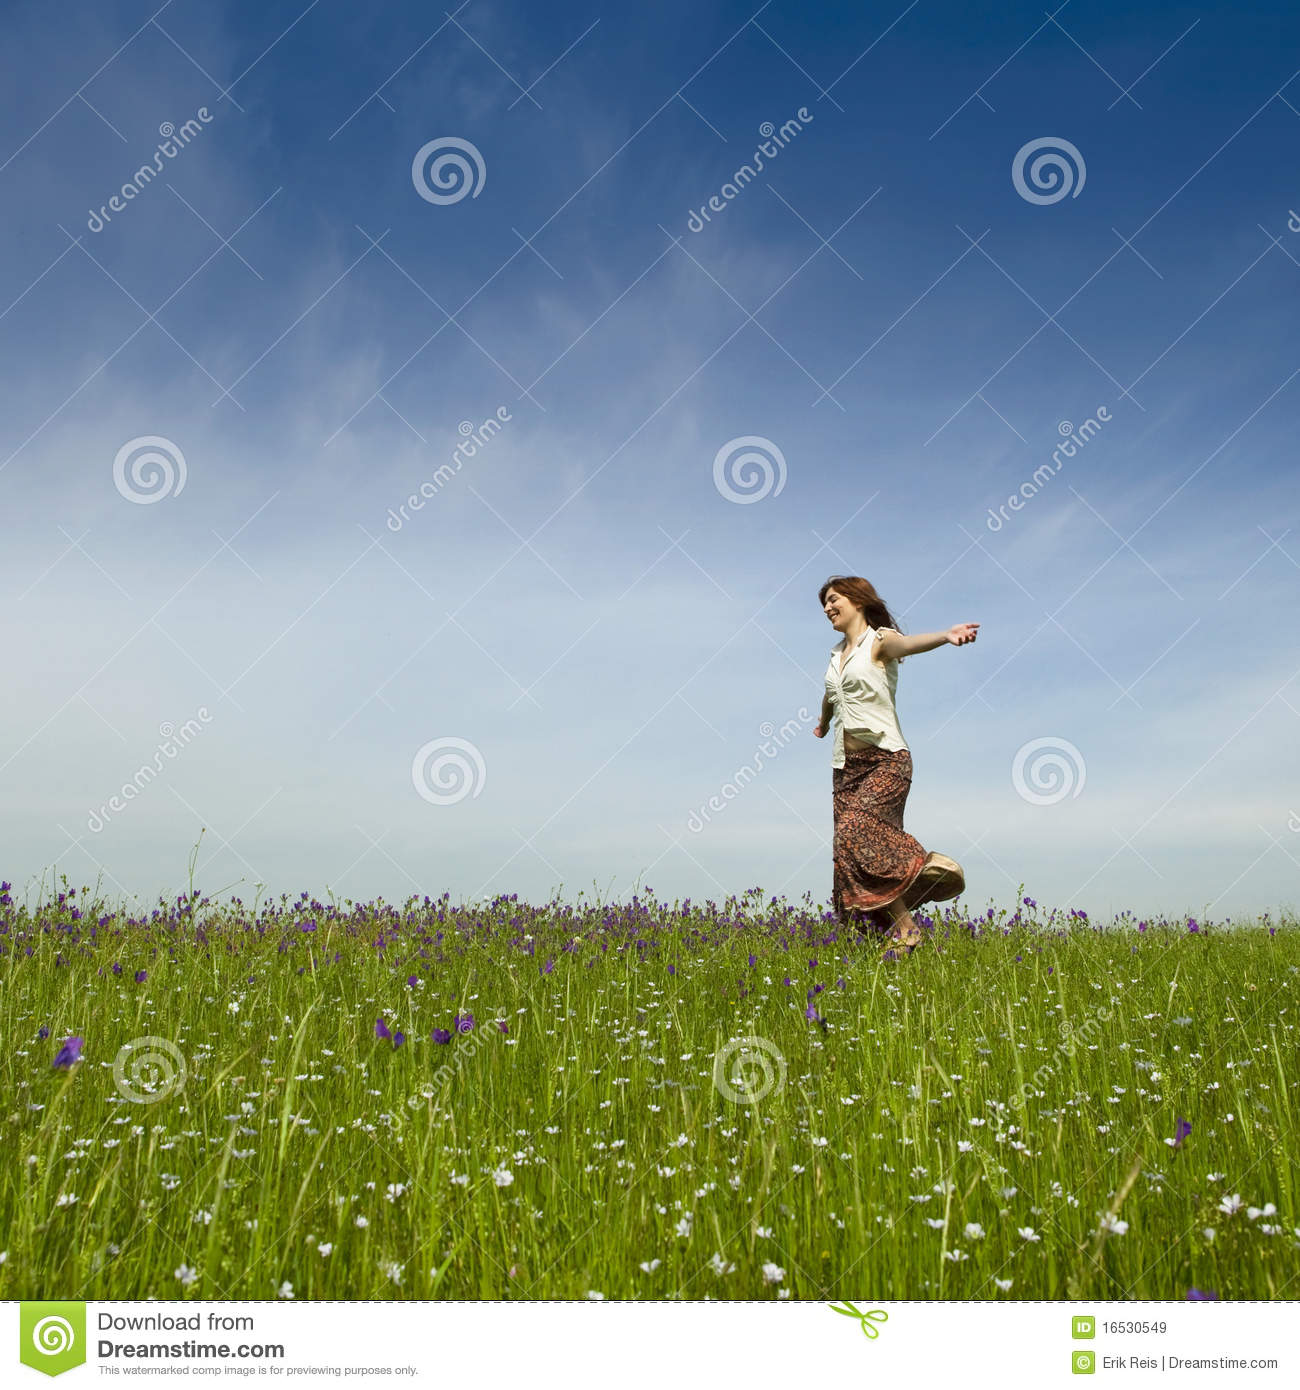 Dancing On Nature Stock Image. Image Of Leisure, Healthy